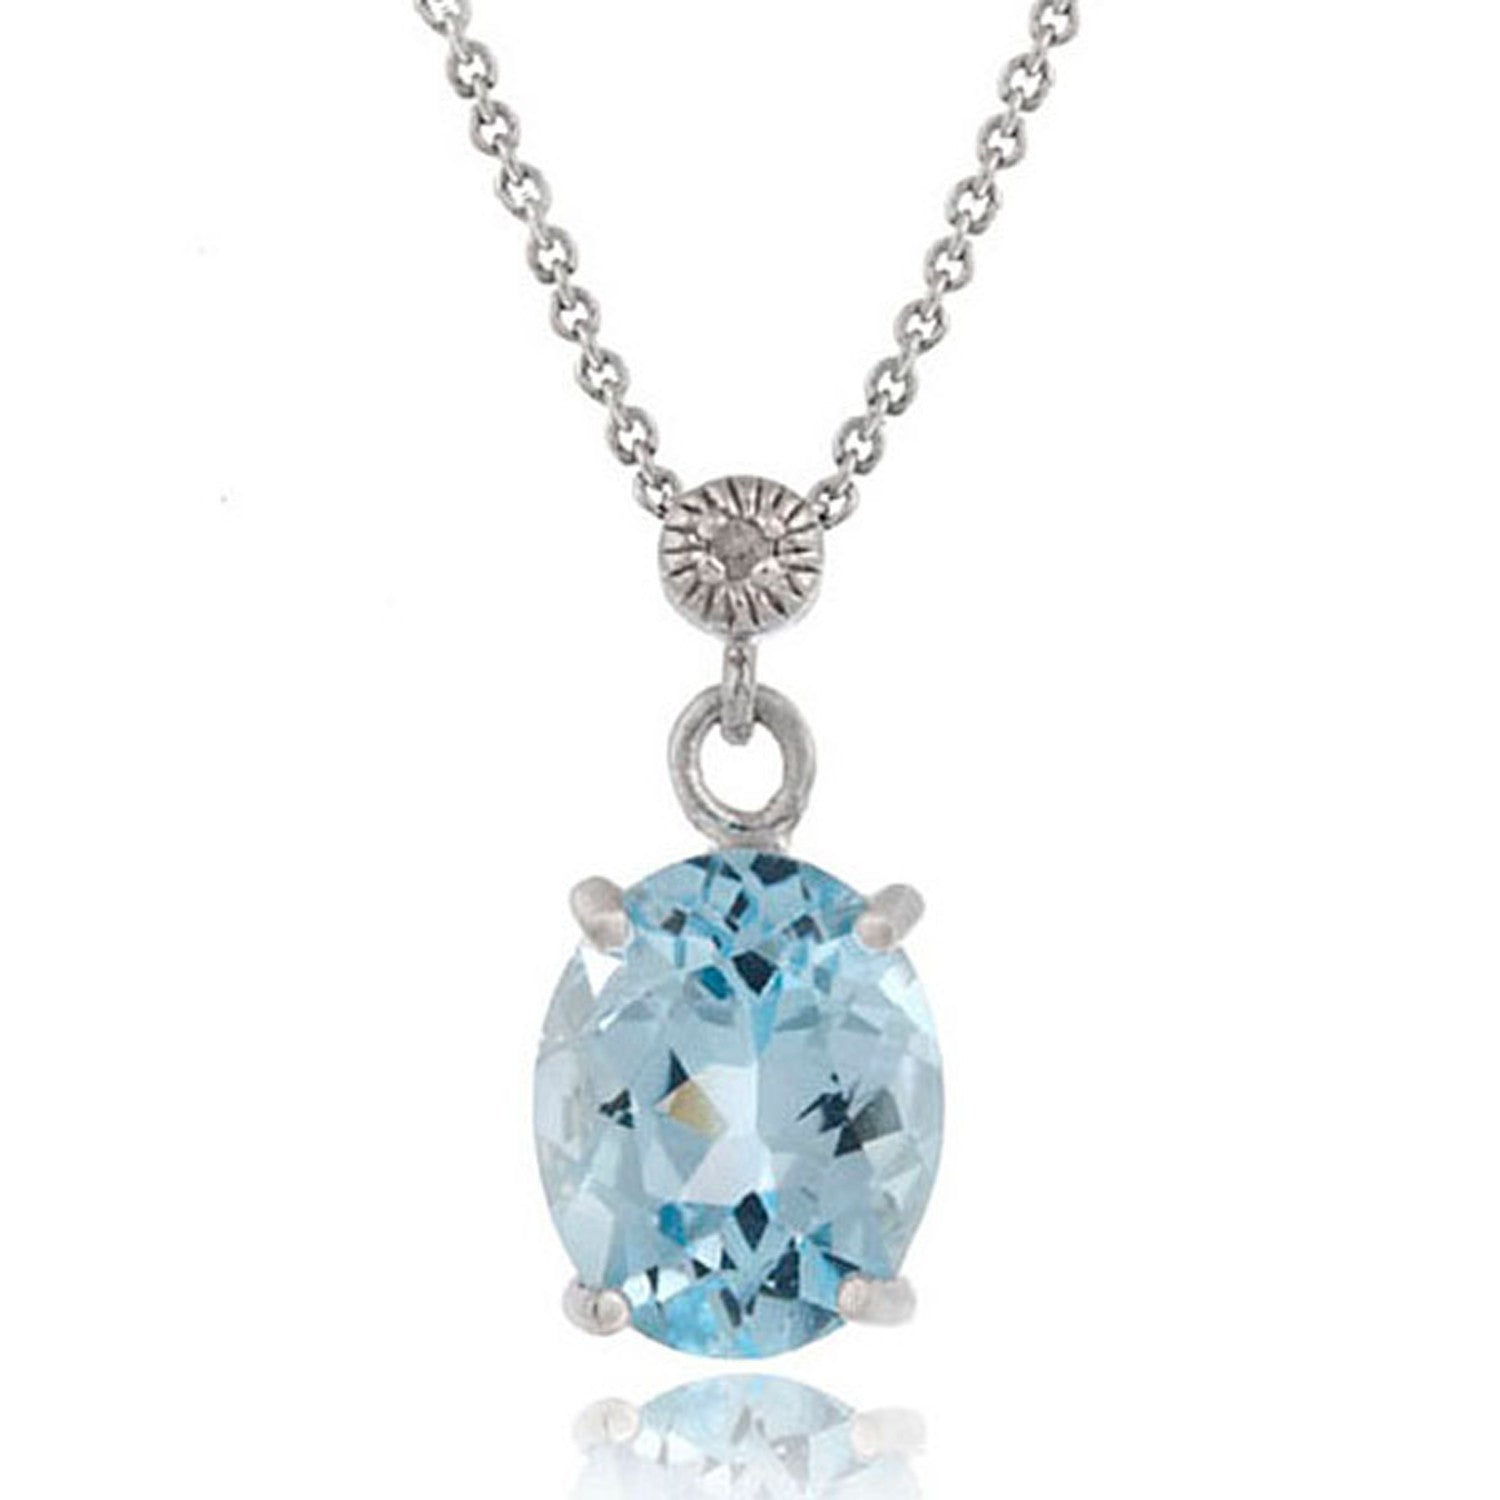 Gemstone & Diamond Accent Necklace in Sterling Silver - Blue Topaz